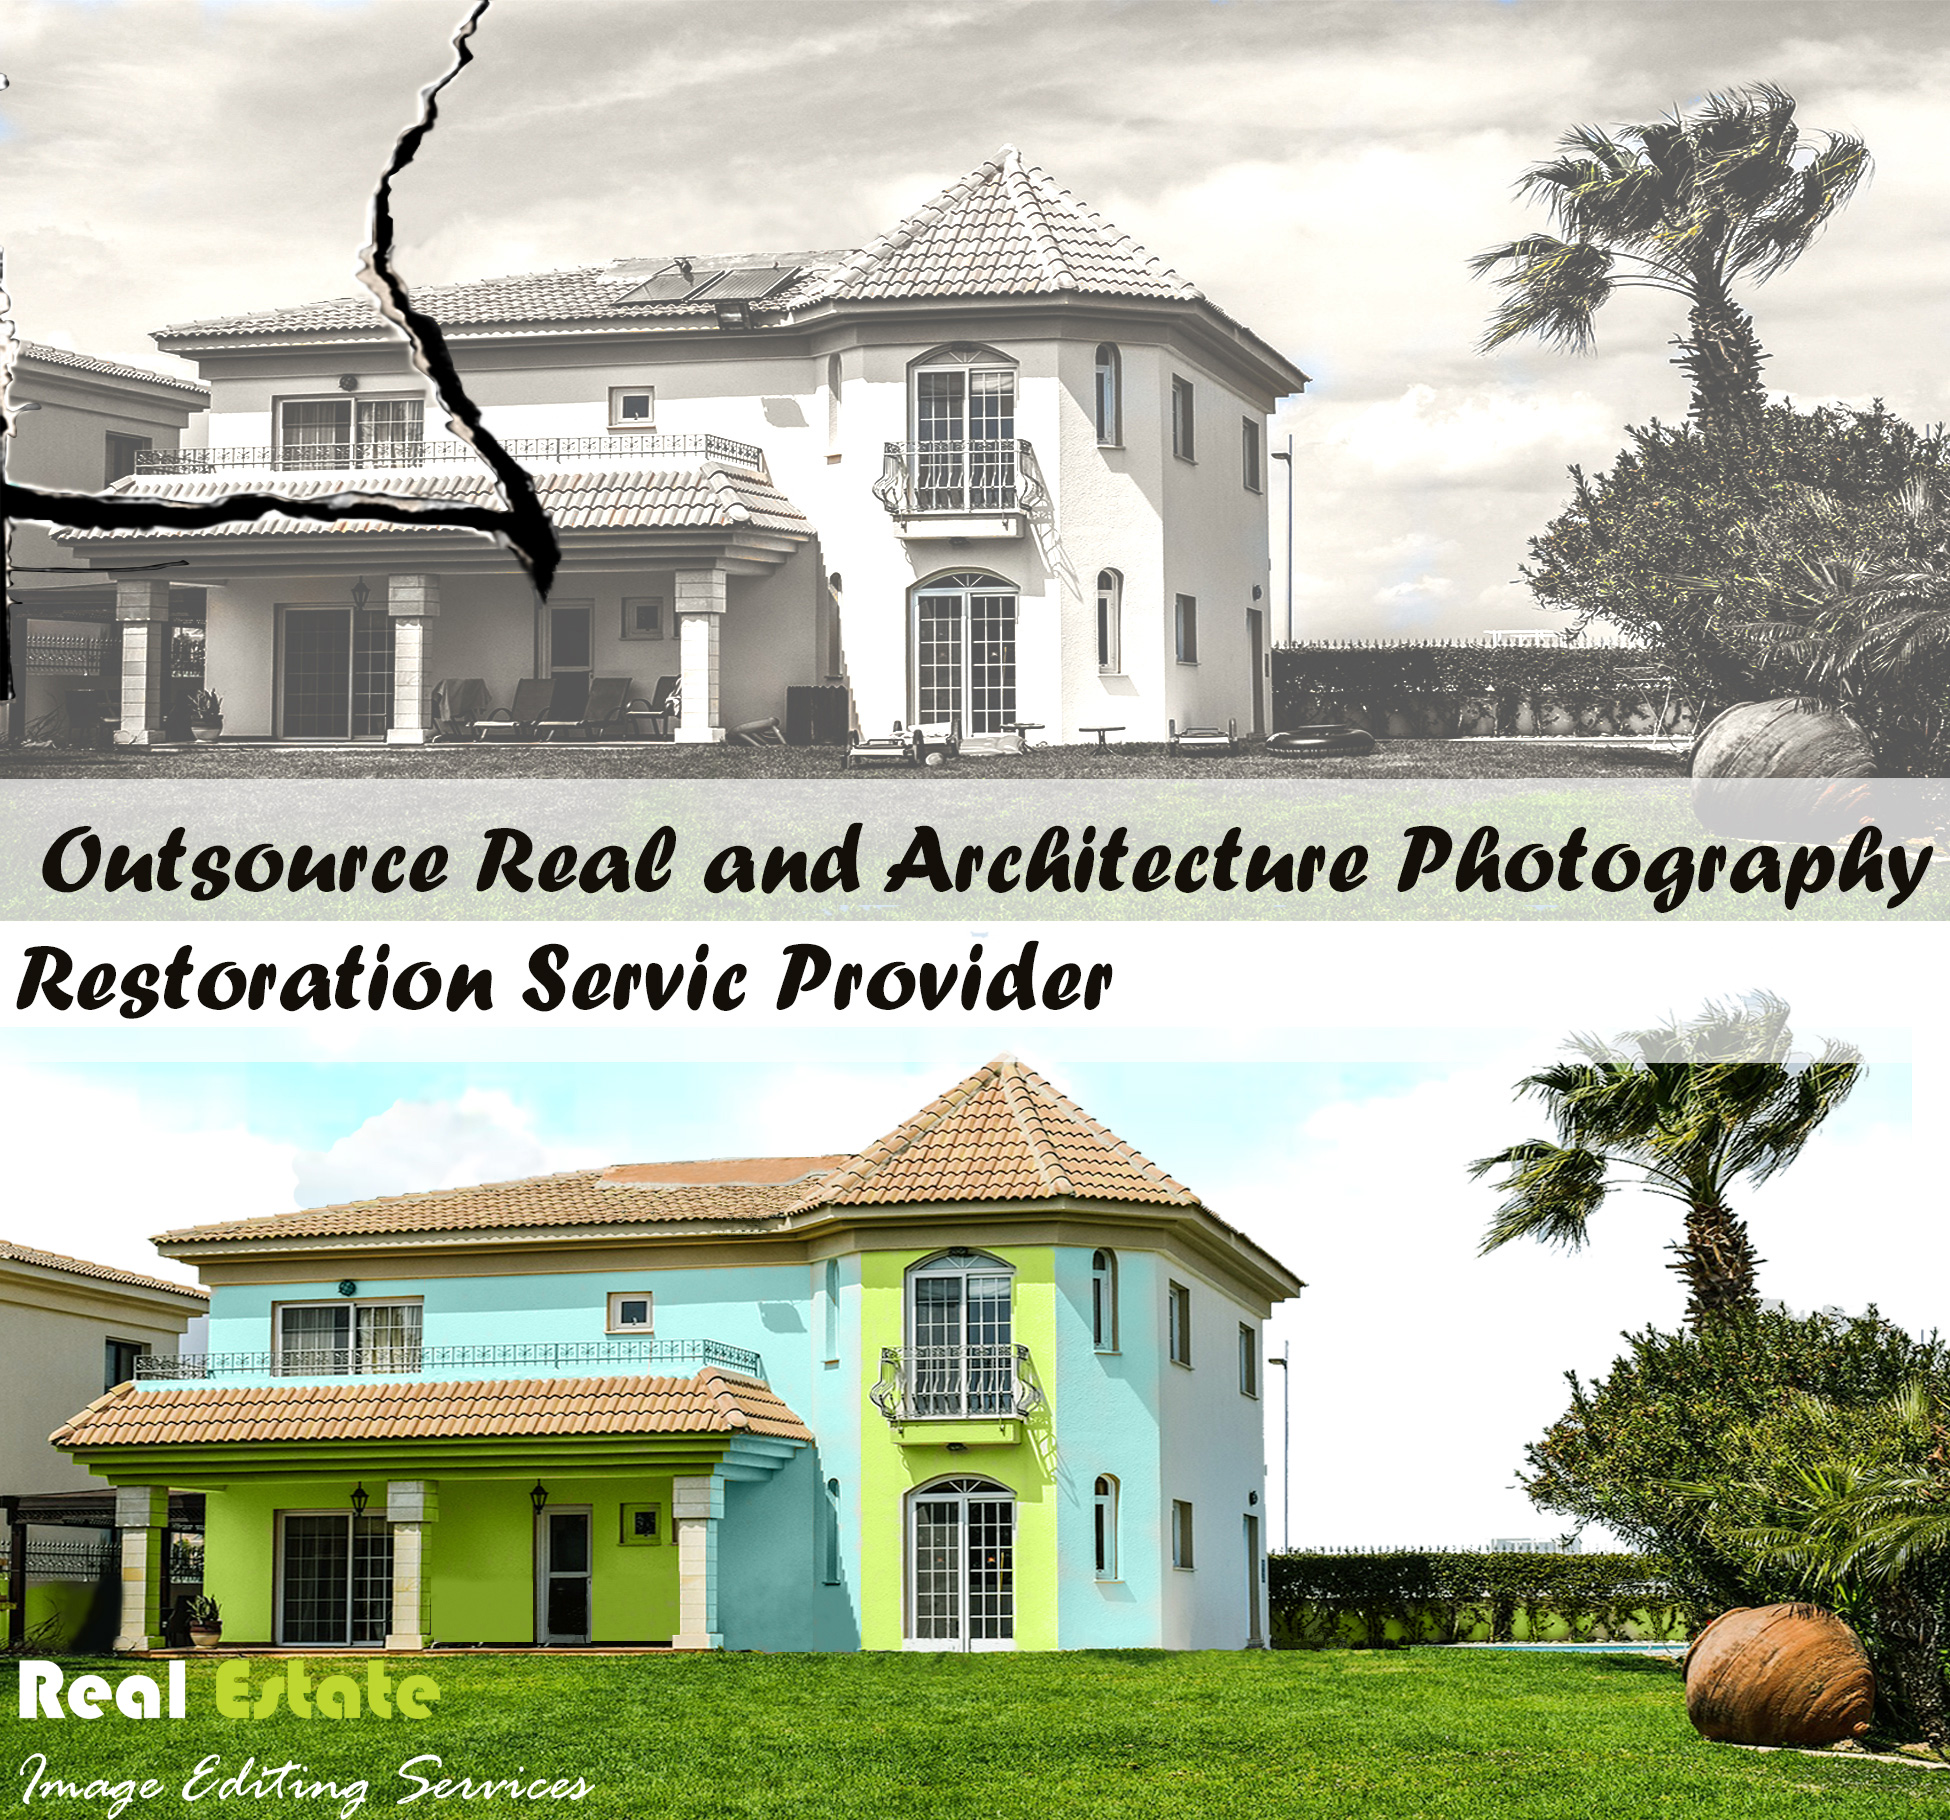 Photography Restoration Service for Real Estate and Architecture Photography